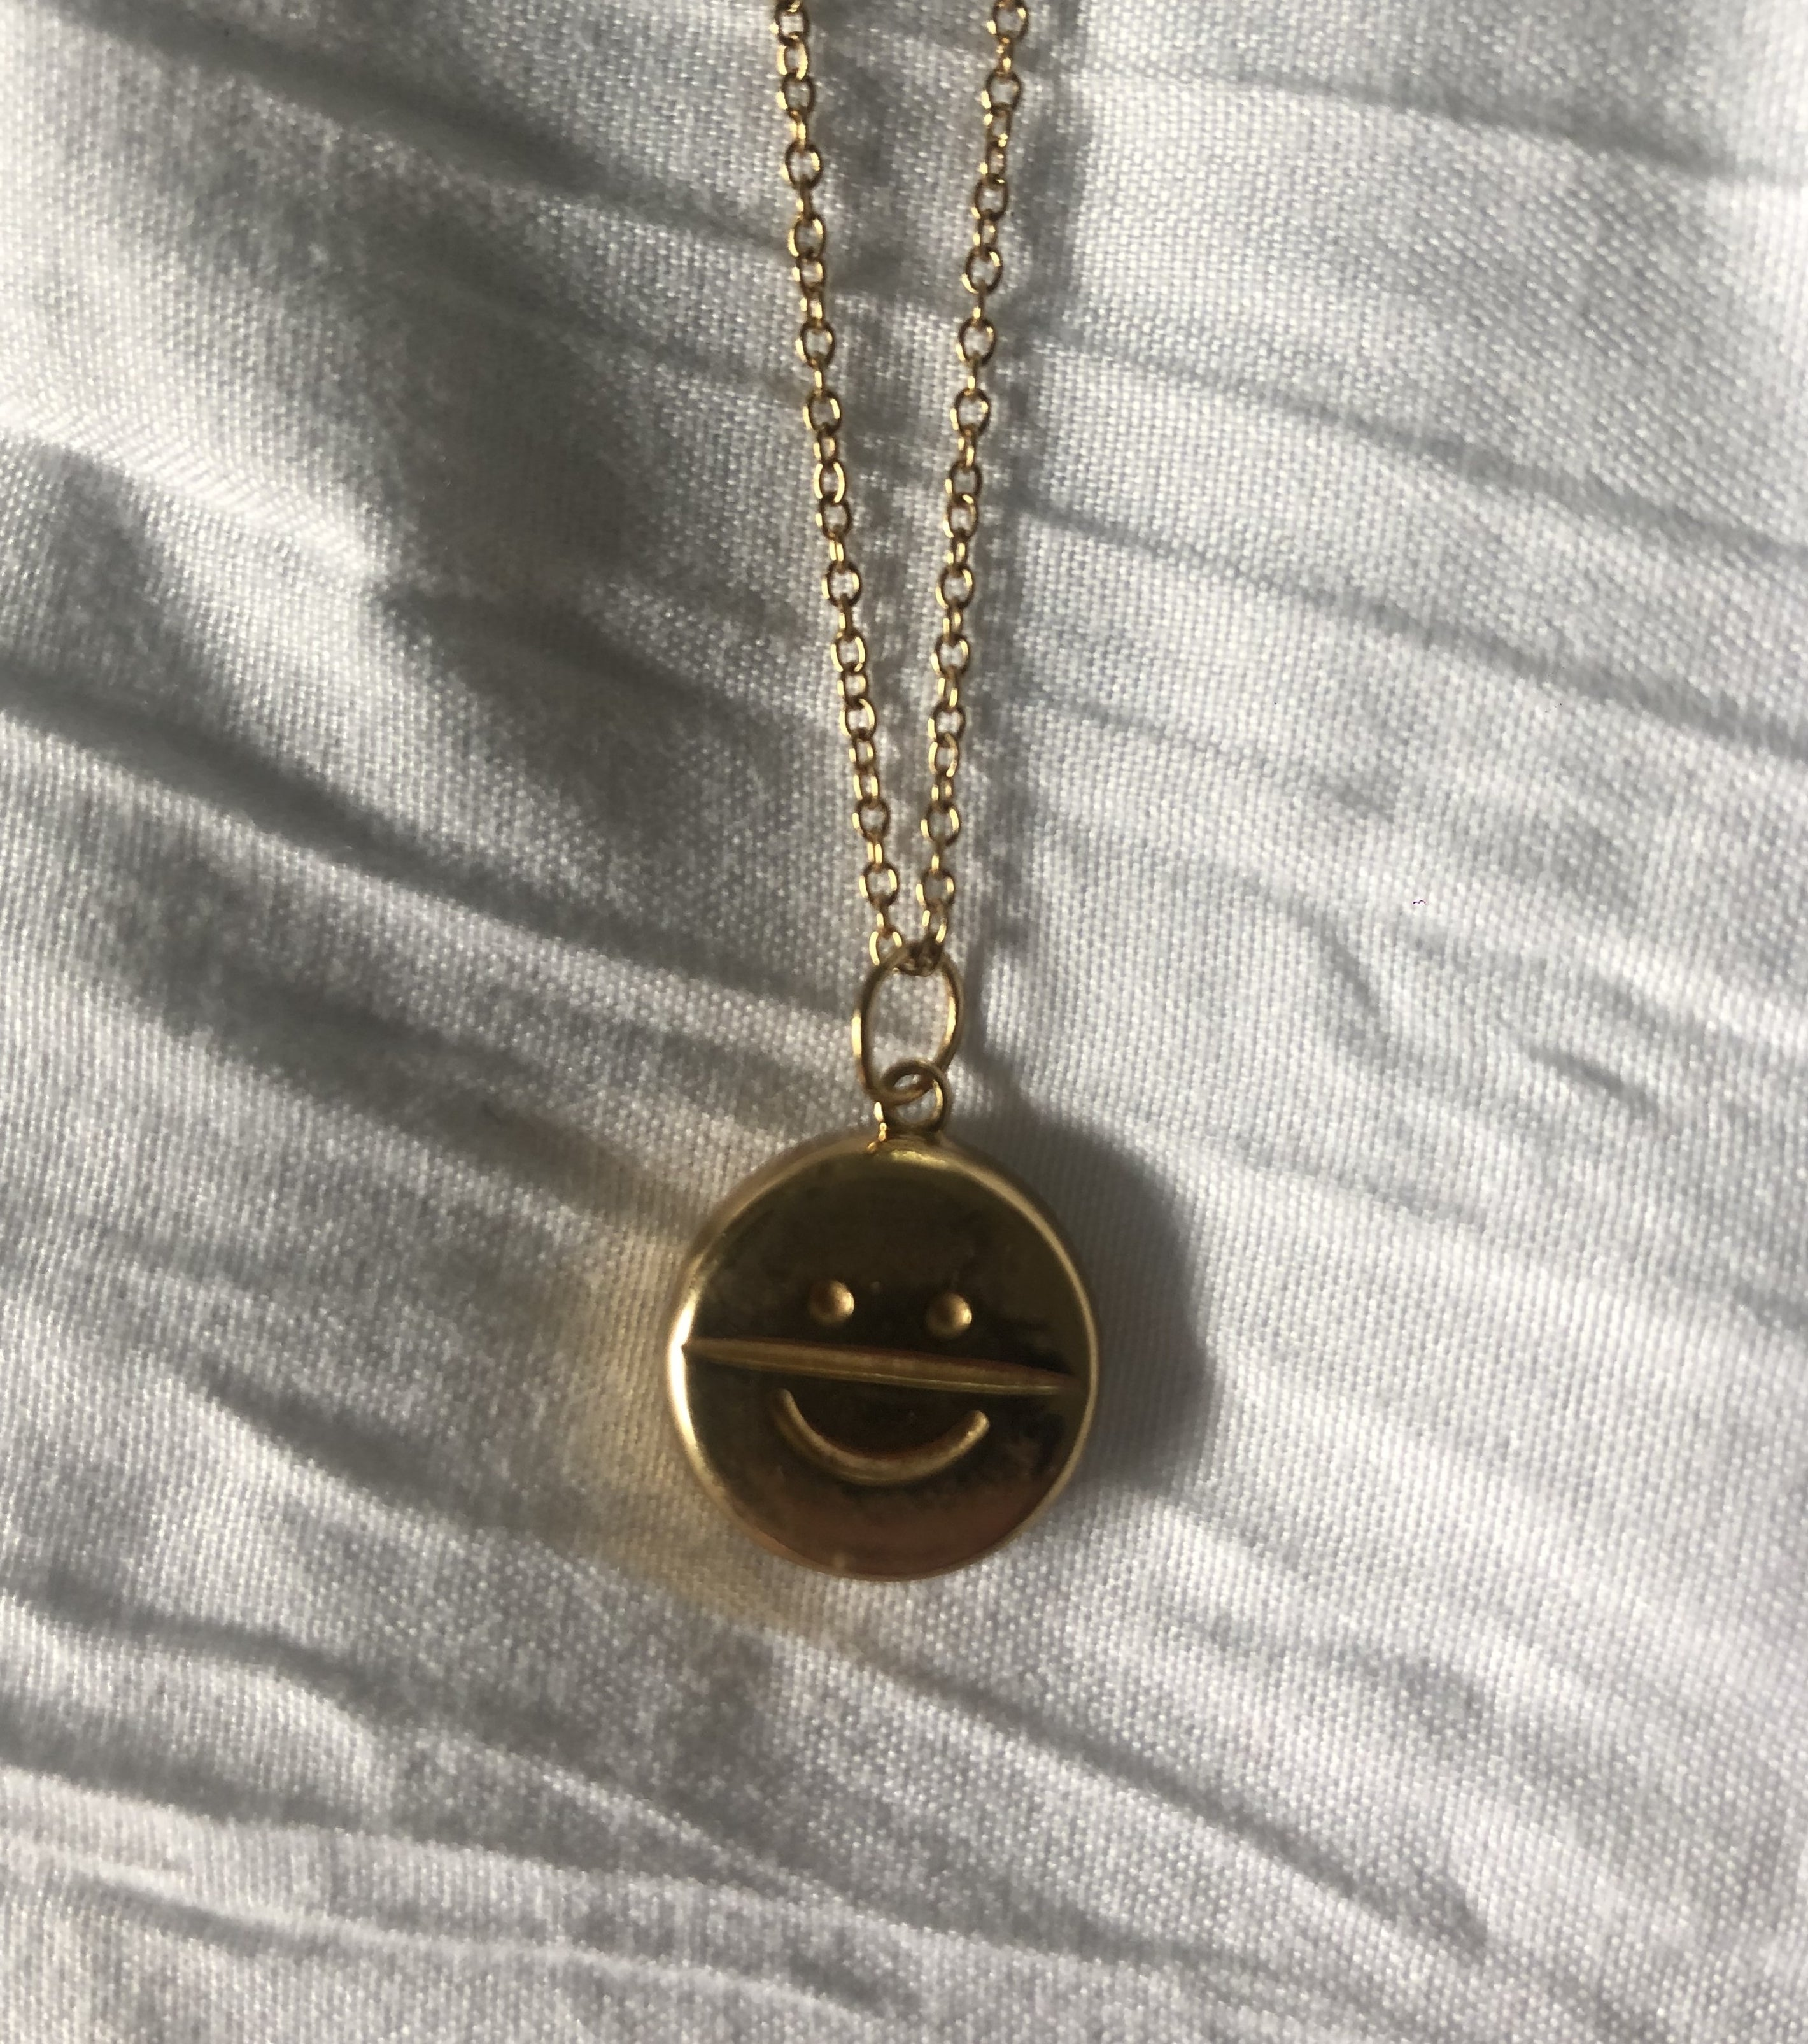 gold necklace with a gold charm of a smiley face on an antidepressant pill